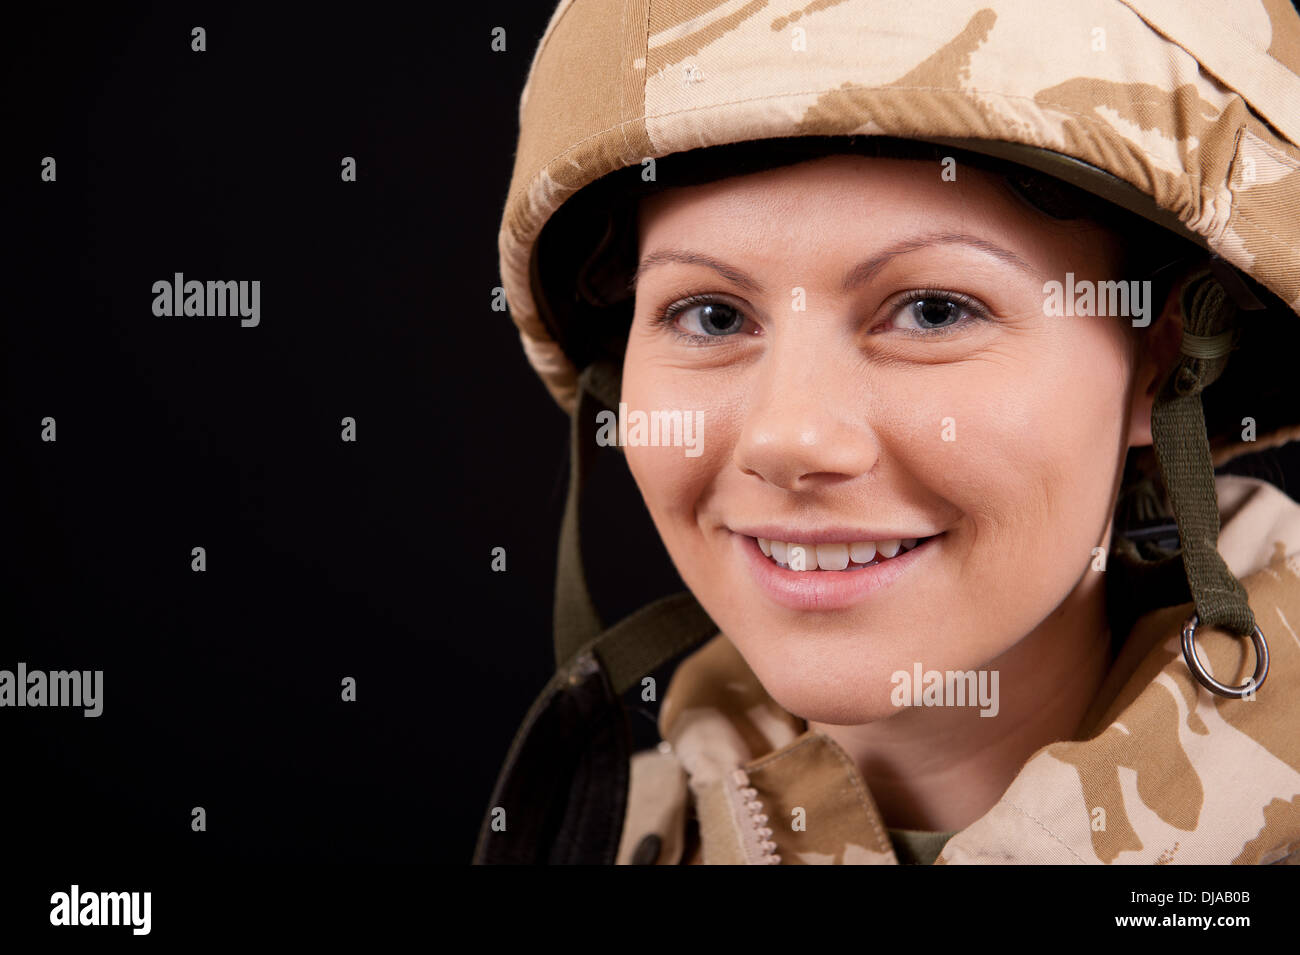 Smiling young female soldier wearing British Military uniform, against a black background. - Stock Image